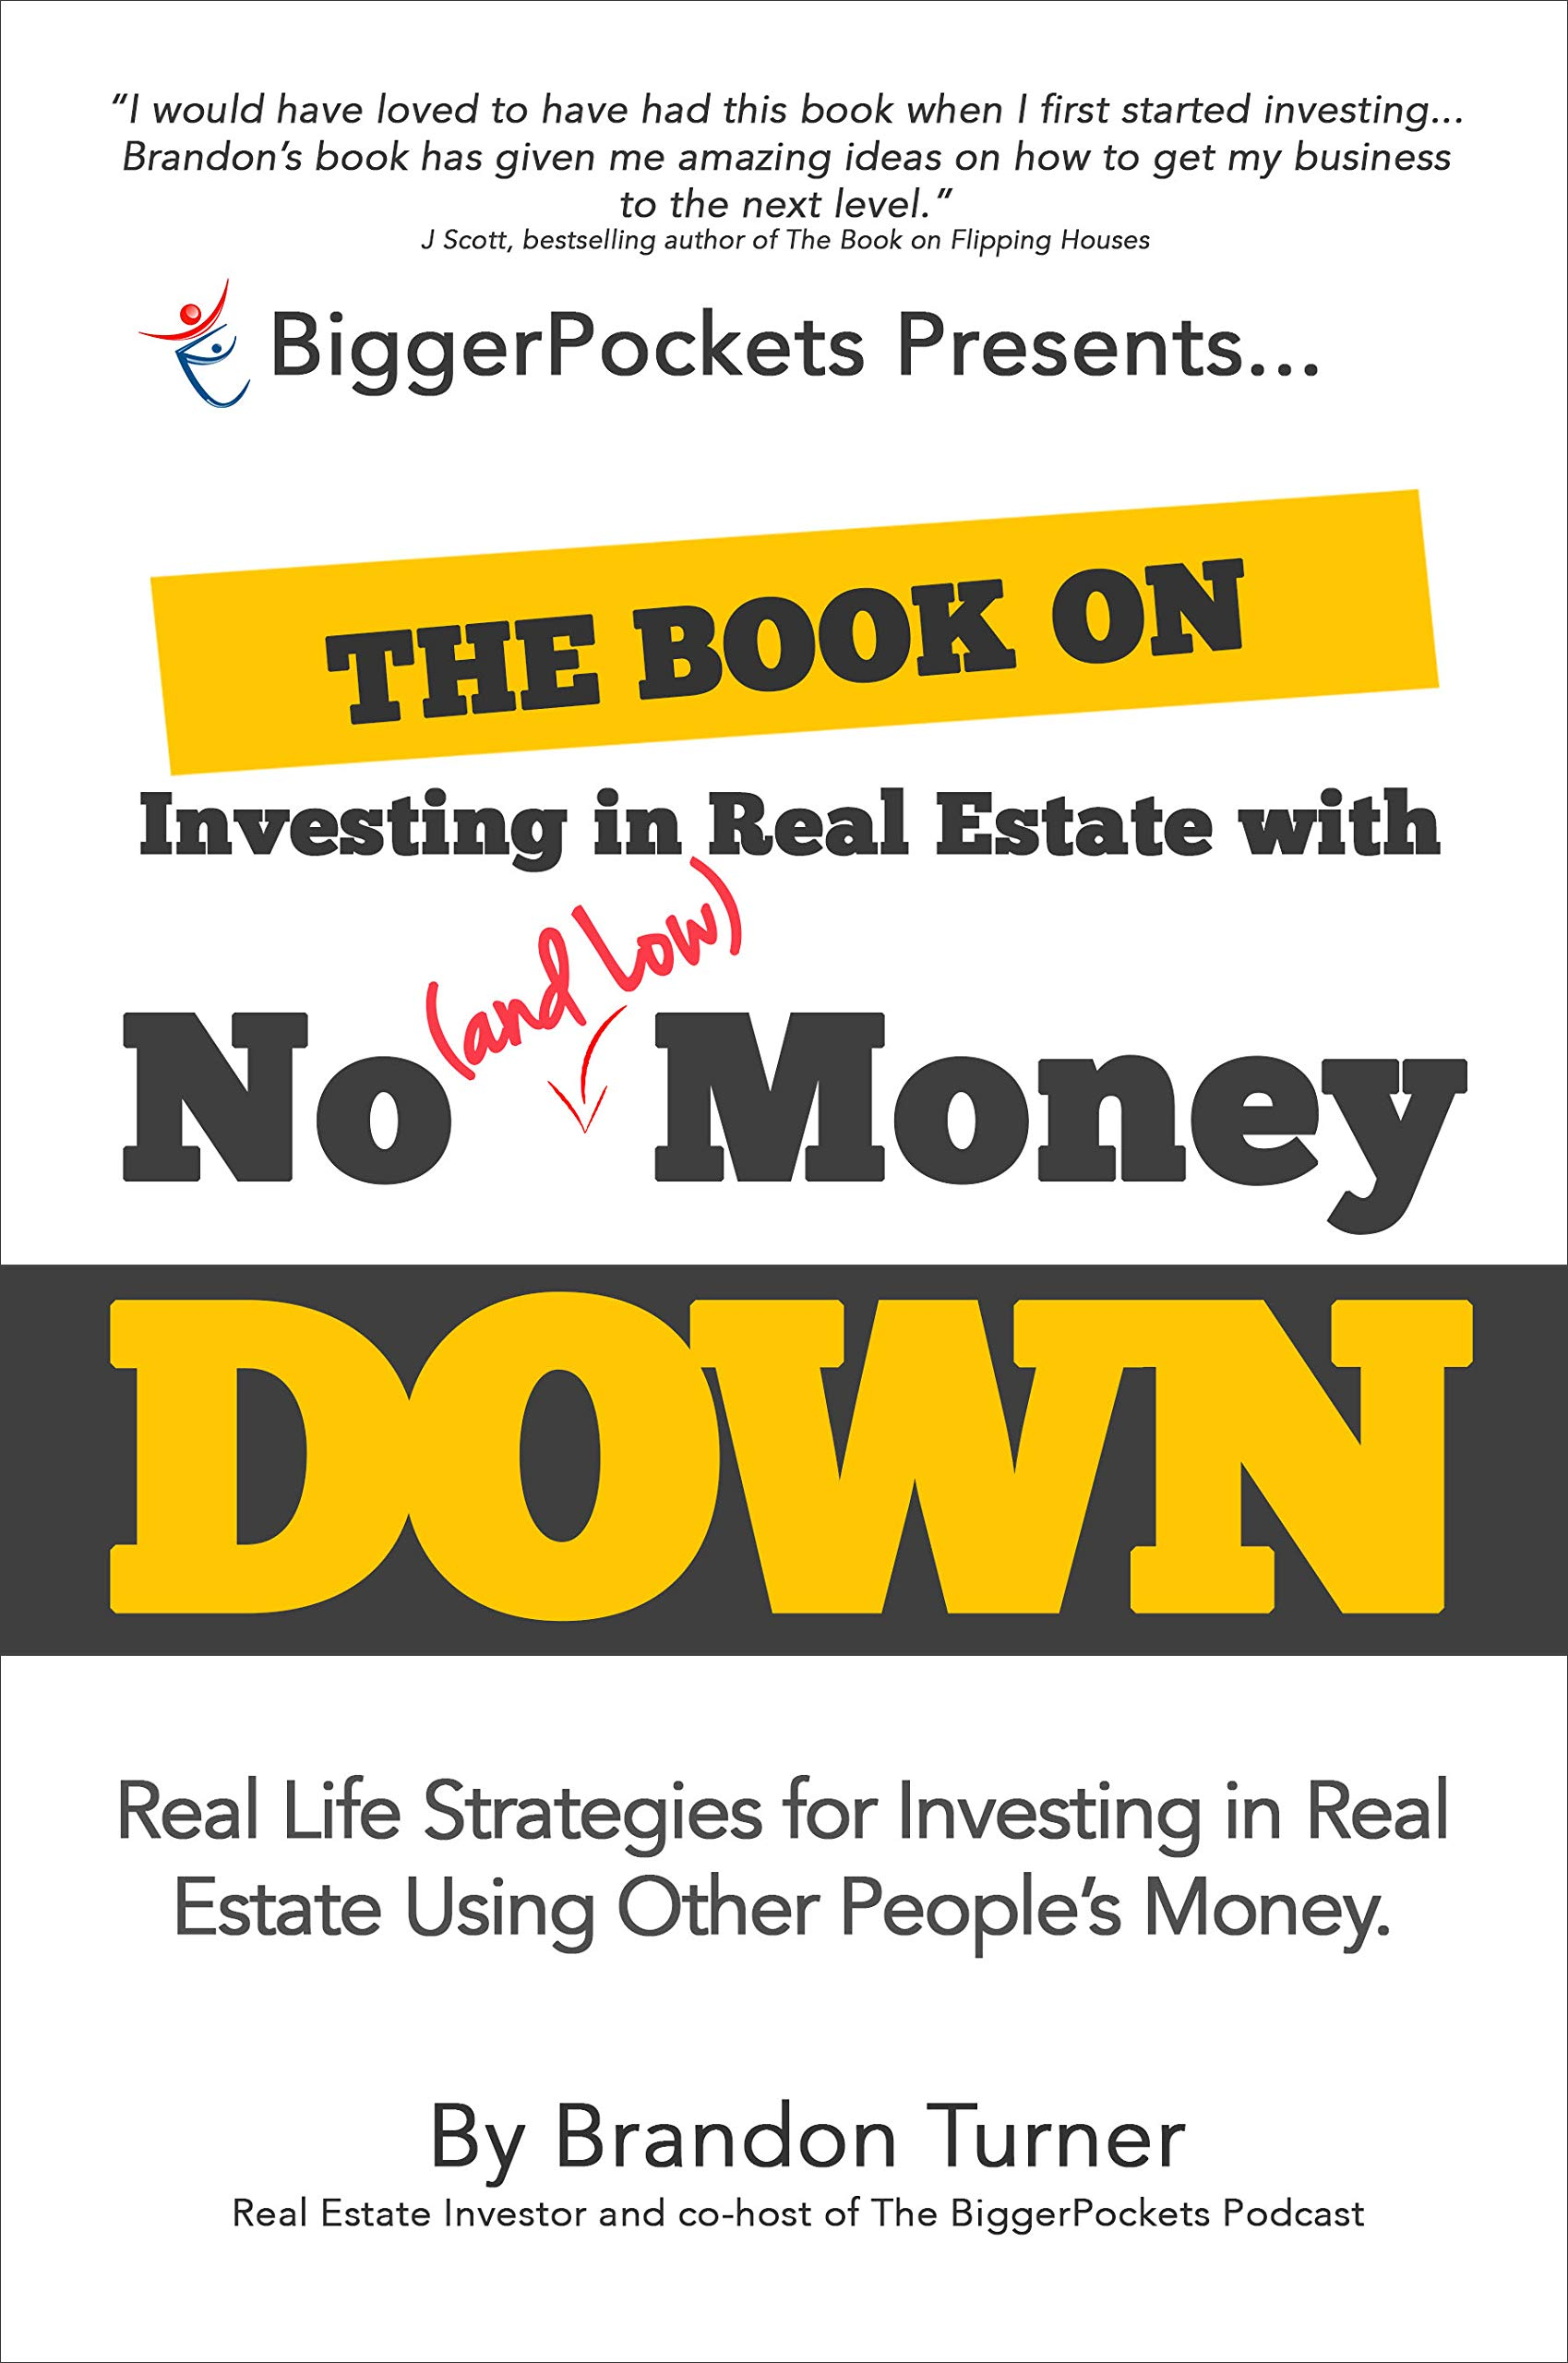 Book on Investing in Real Estate with No (and Low) Money Down book front cover